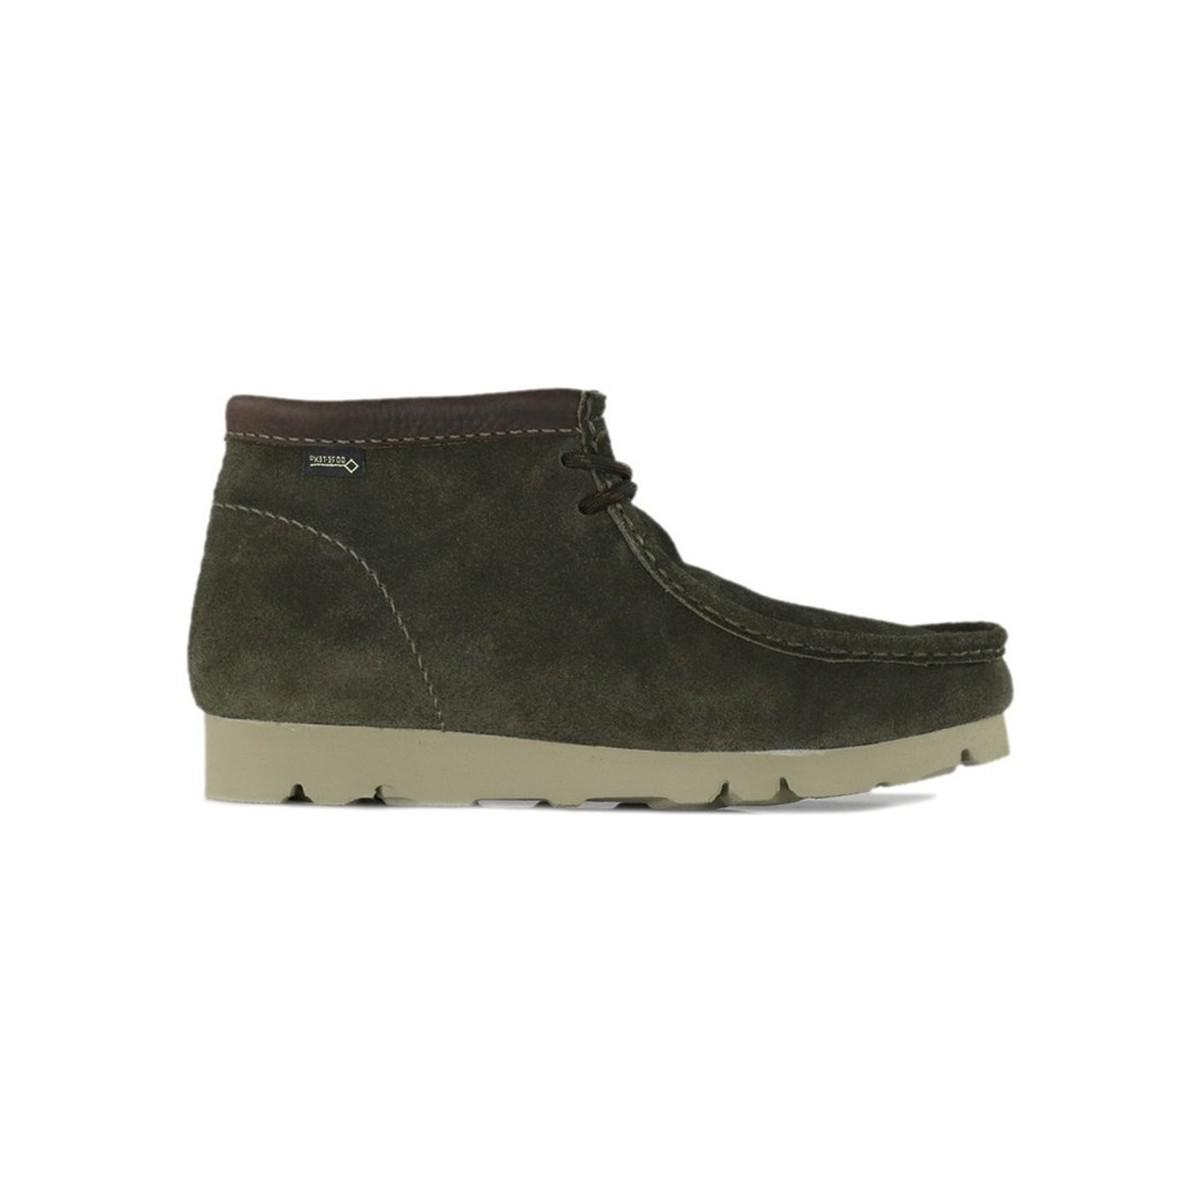 216583fbe80e21 Clarks Wallabee Bt Gtx Peat Suede Men s Mid Boots In Brown in Brown ...